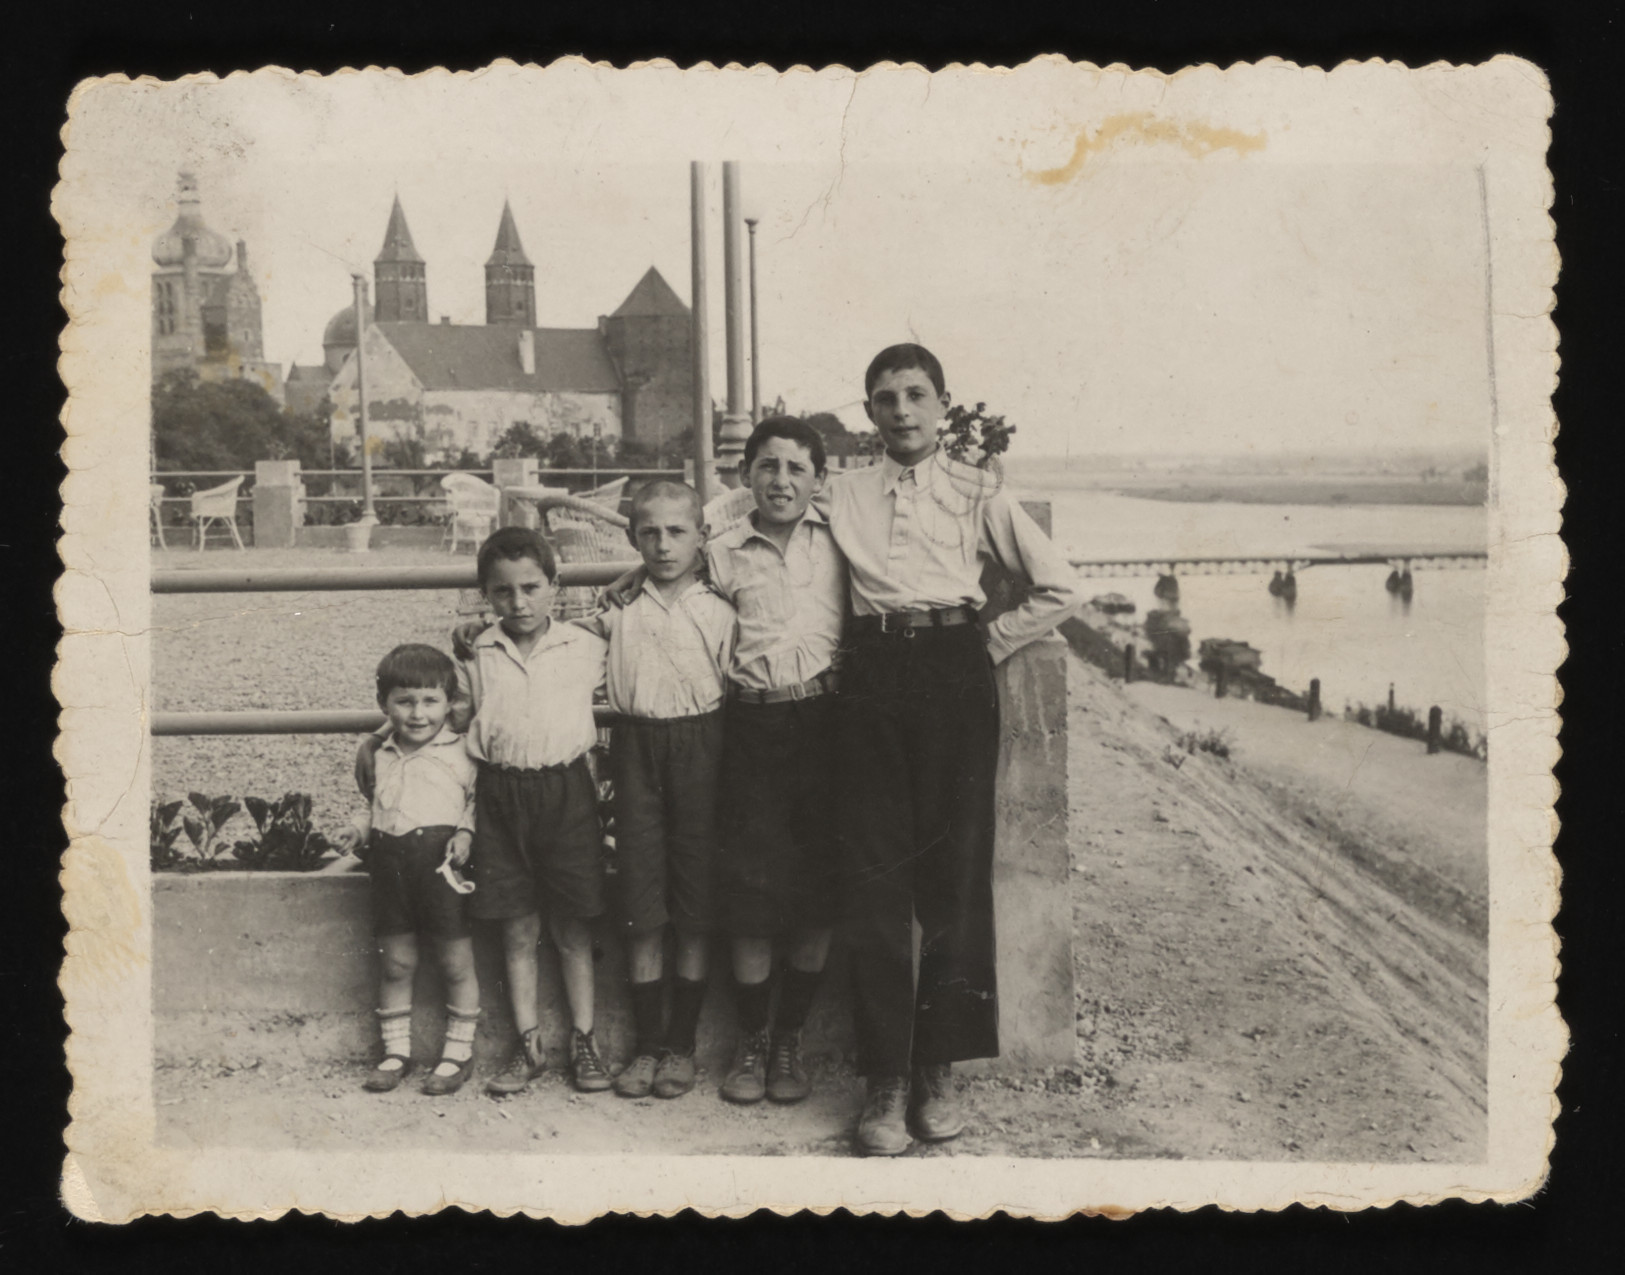 Five brothers pose in a row on the banks of the river in Plock.  Pictured from left to right are Yosef, Aaron, Srulek, Matek, and Elek Arbeiter.